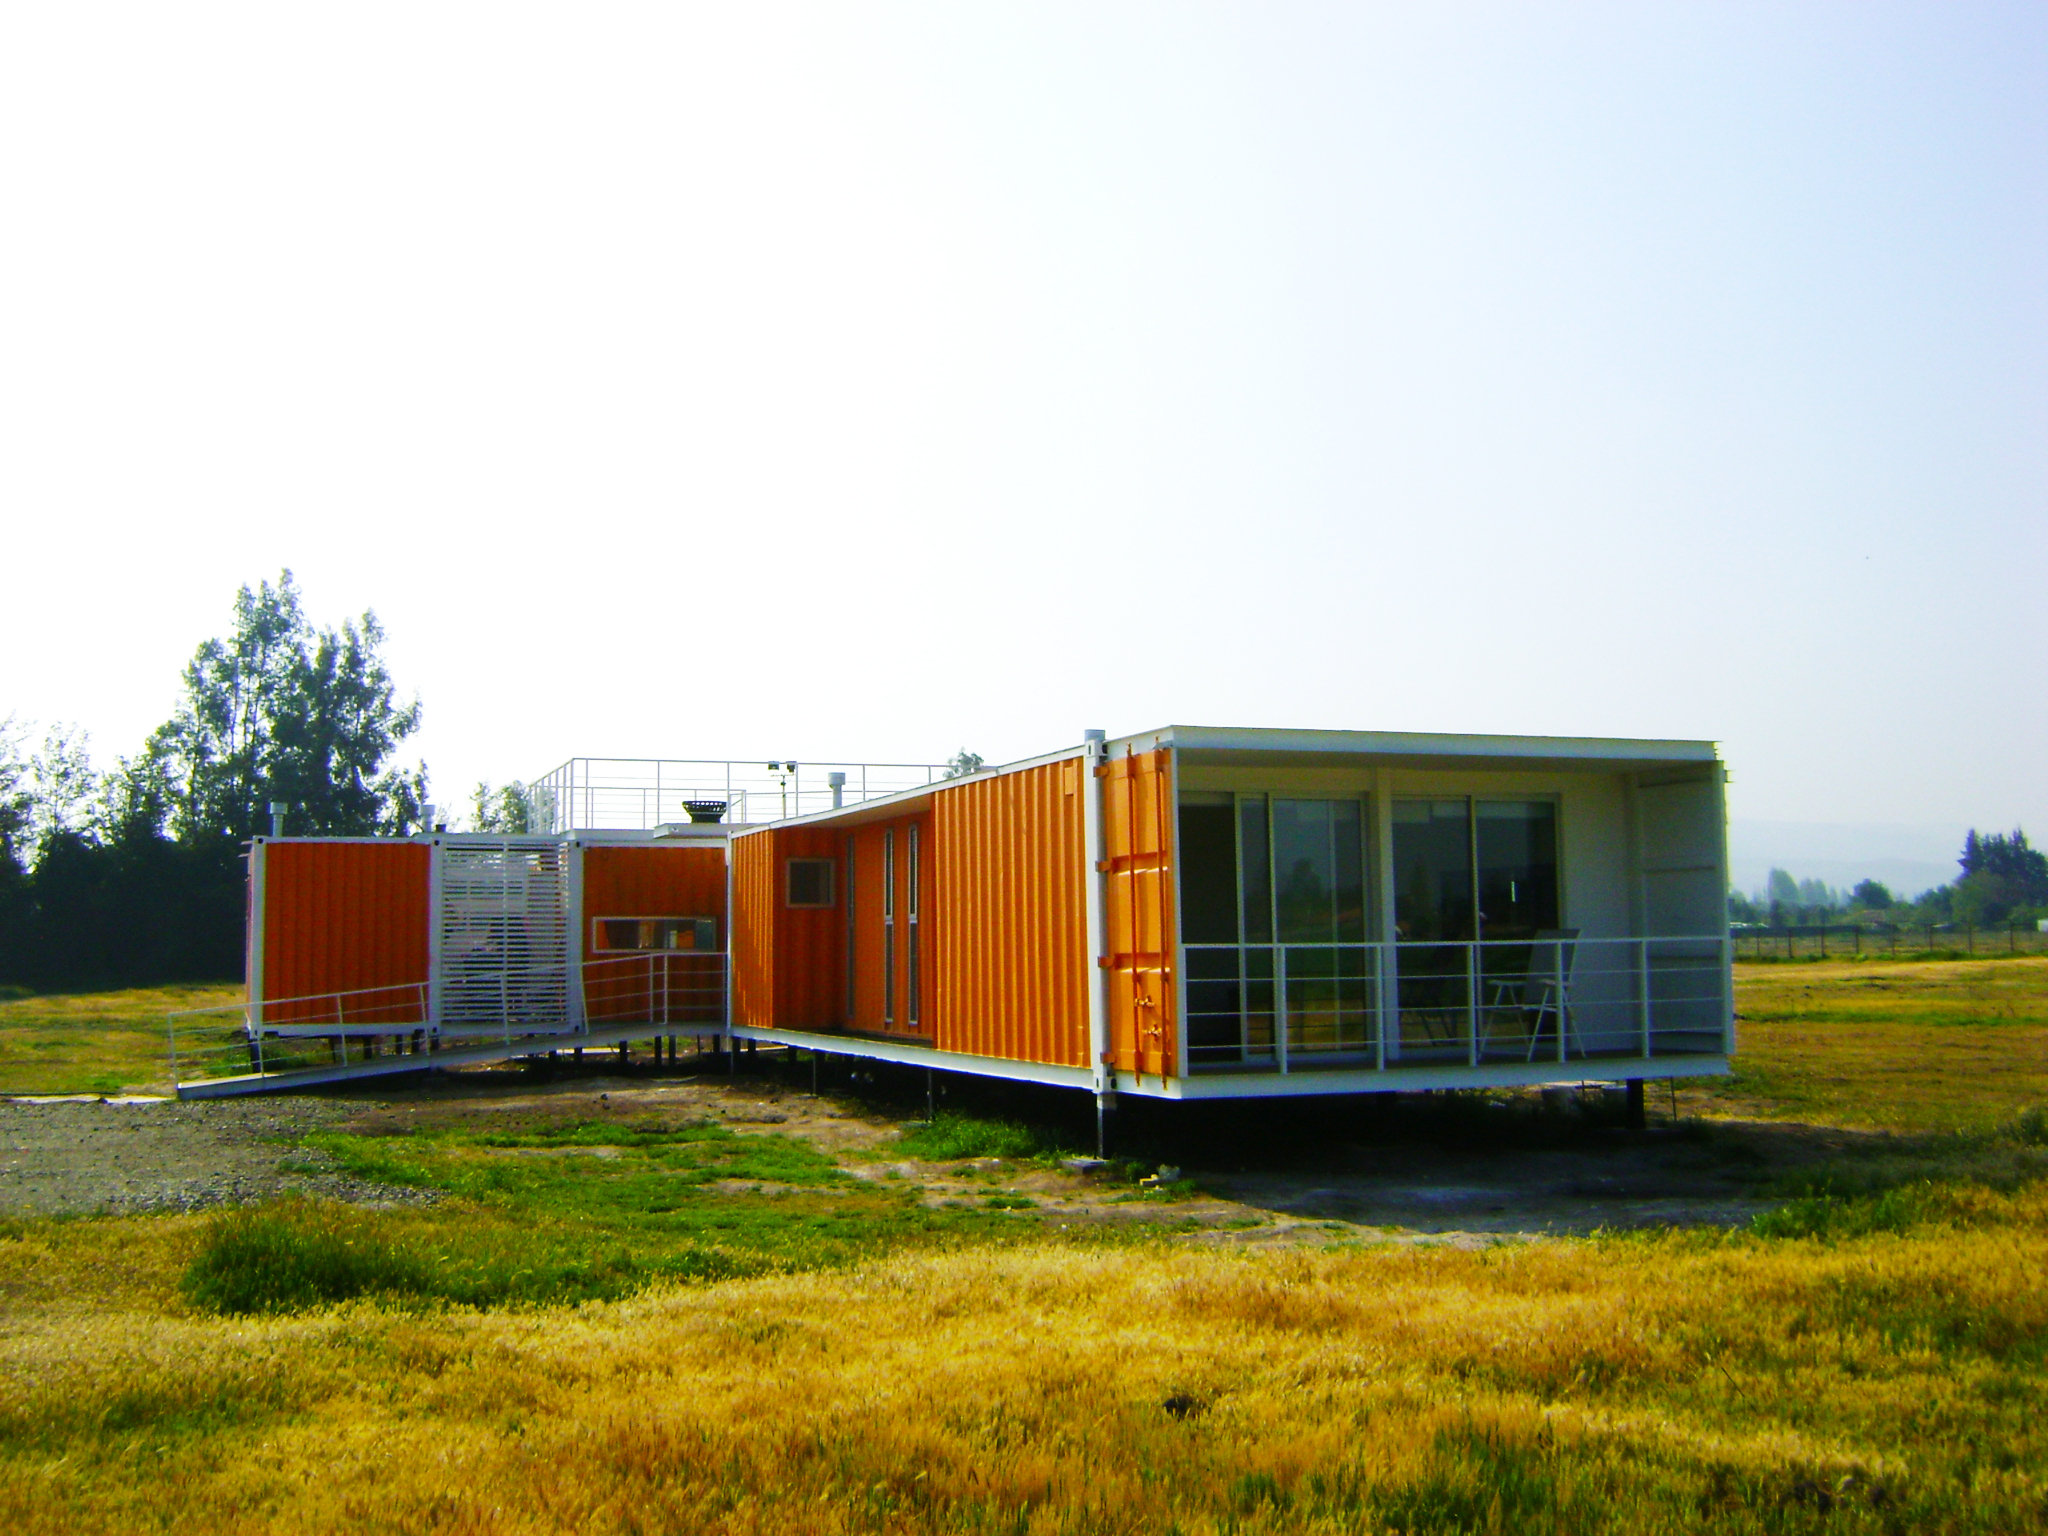 9 inspiring modular container home designs | container living